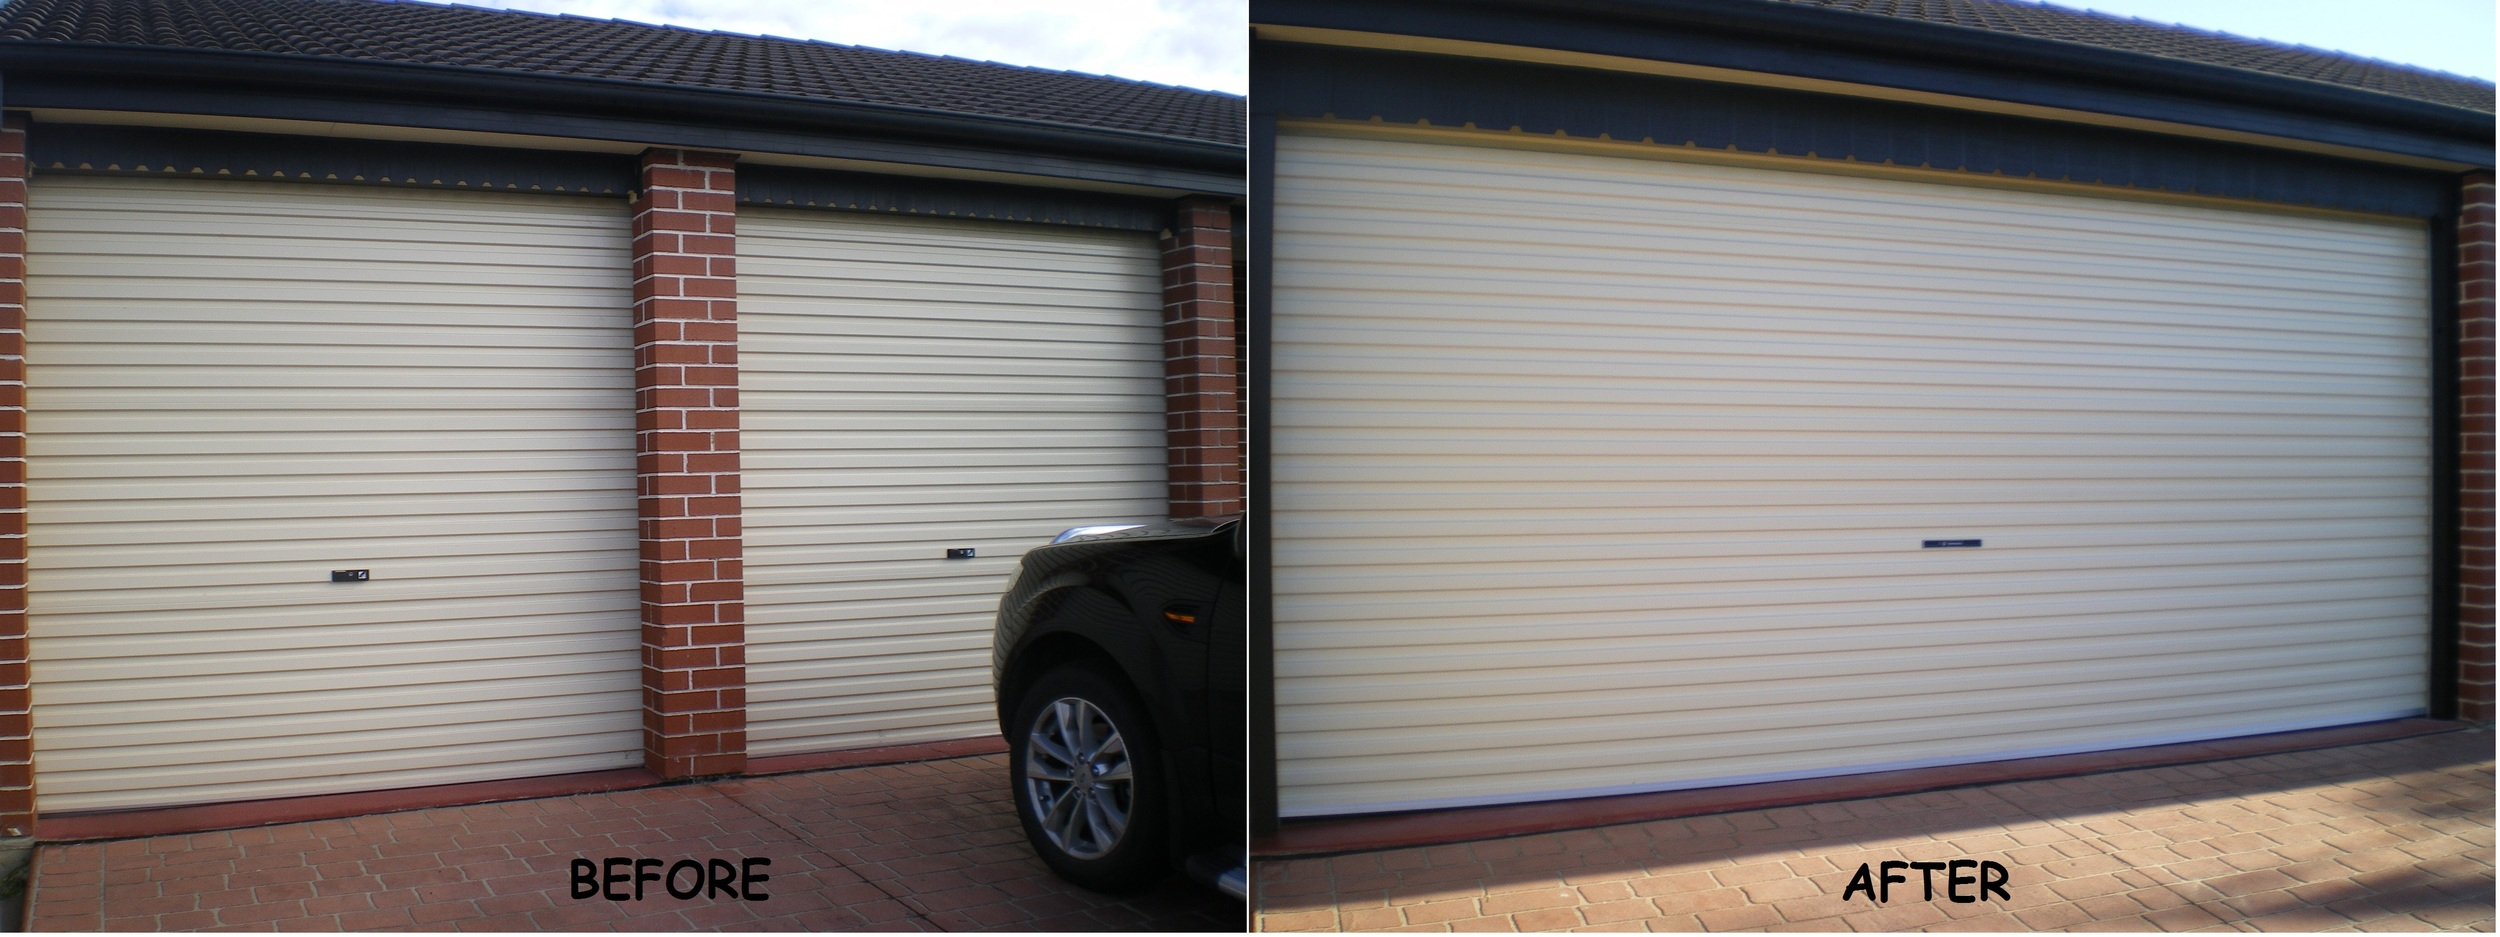 JOB SPECIFICATION TO TAKE DOWN TWO ROLLER DOORS AND CENTRE PIER AND REPLACE WITH SINGLE WIDTH ROLLER DOOR